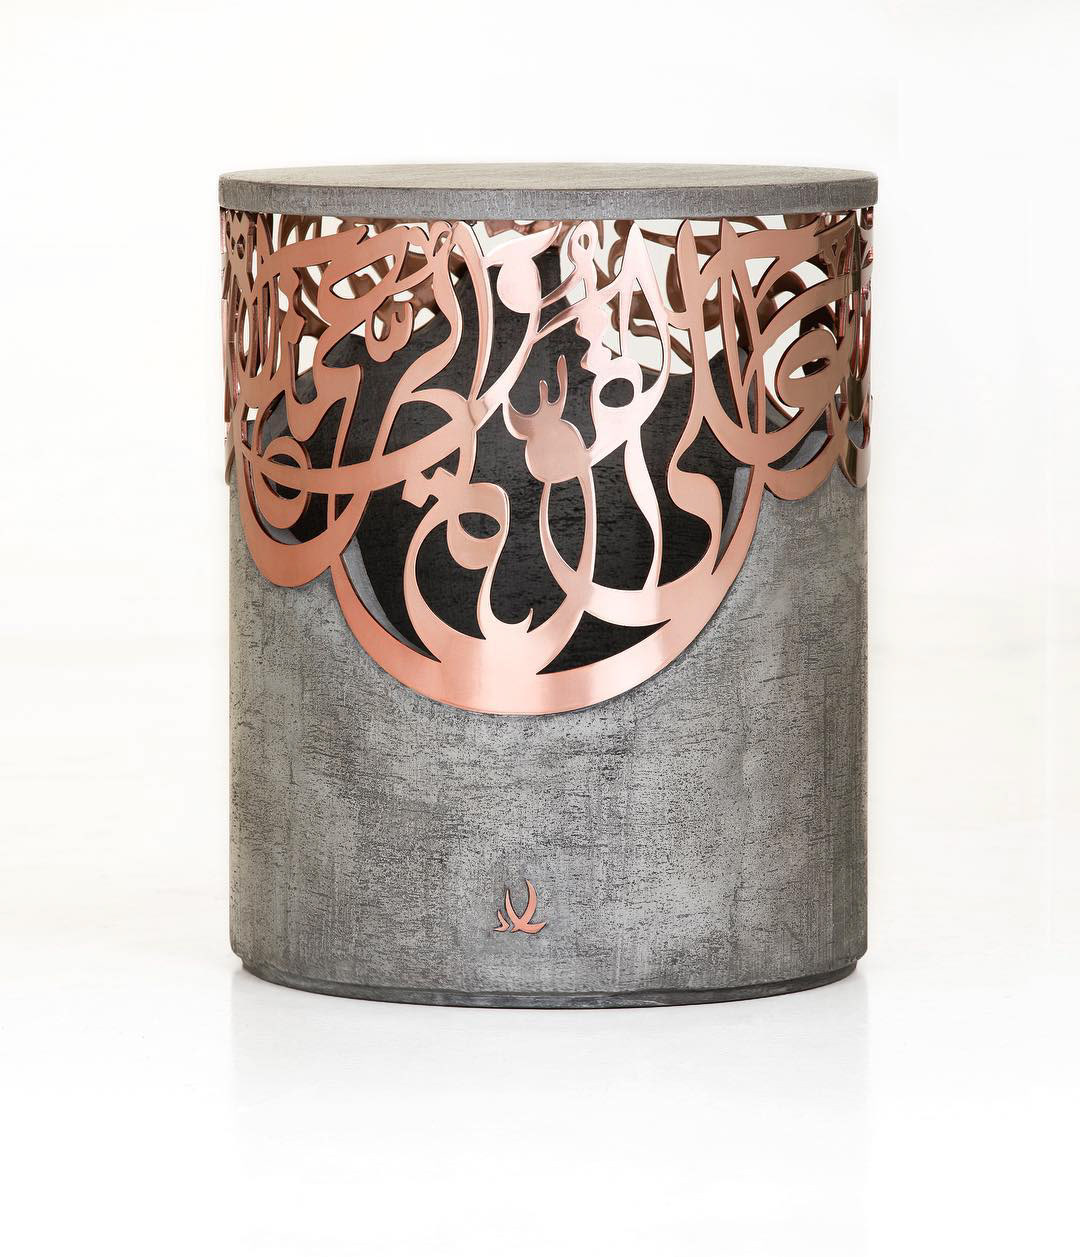 My Classical Arabic Calligraphy Works In The Form Of Modern Furniture Pieces Collaboration With Designer Iyad Naja